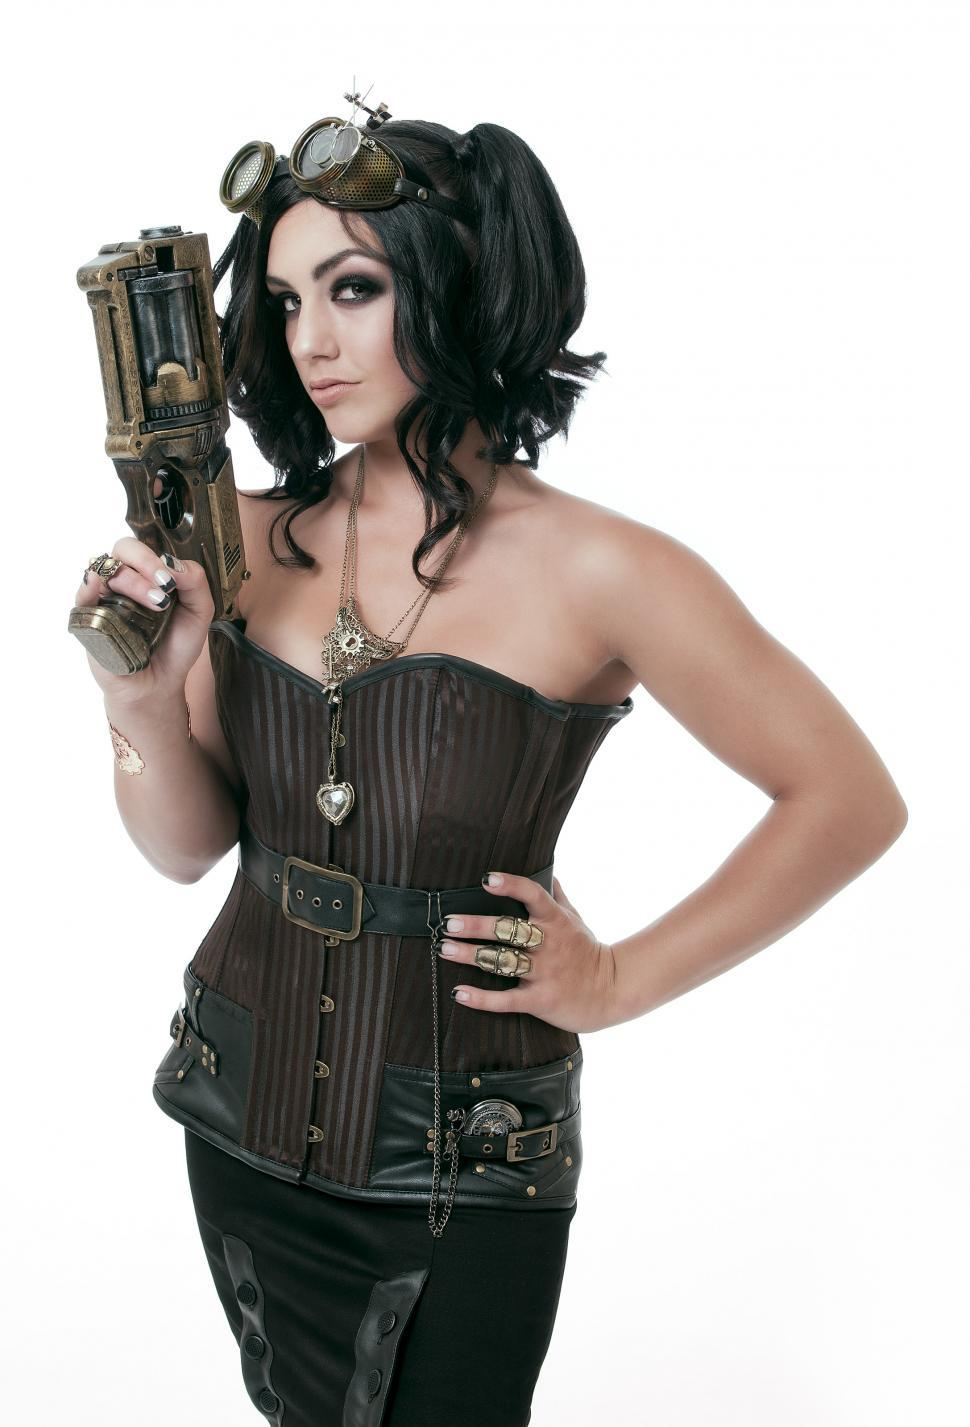 Download Free Stock Photo of Dressed up woman with steampunk gun